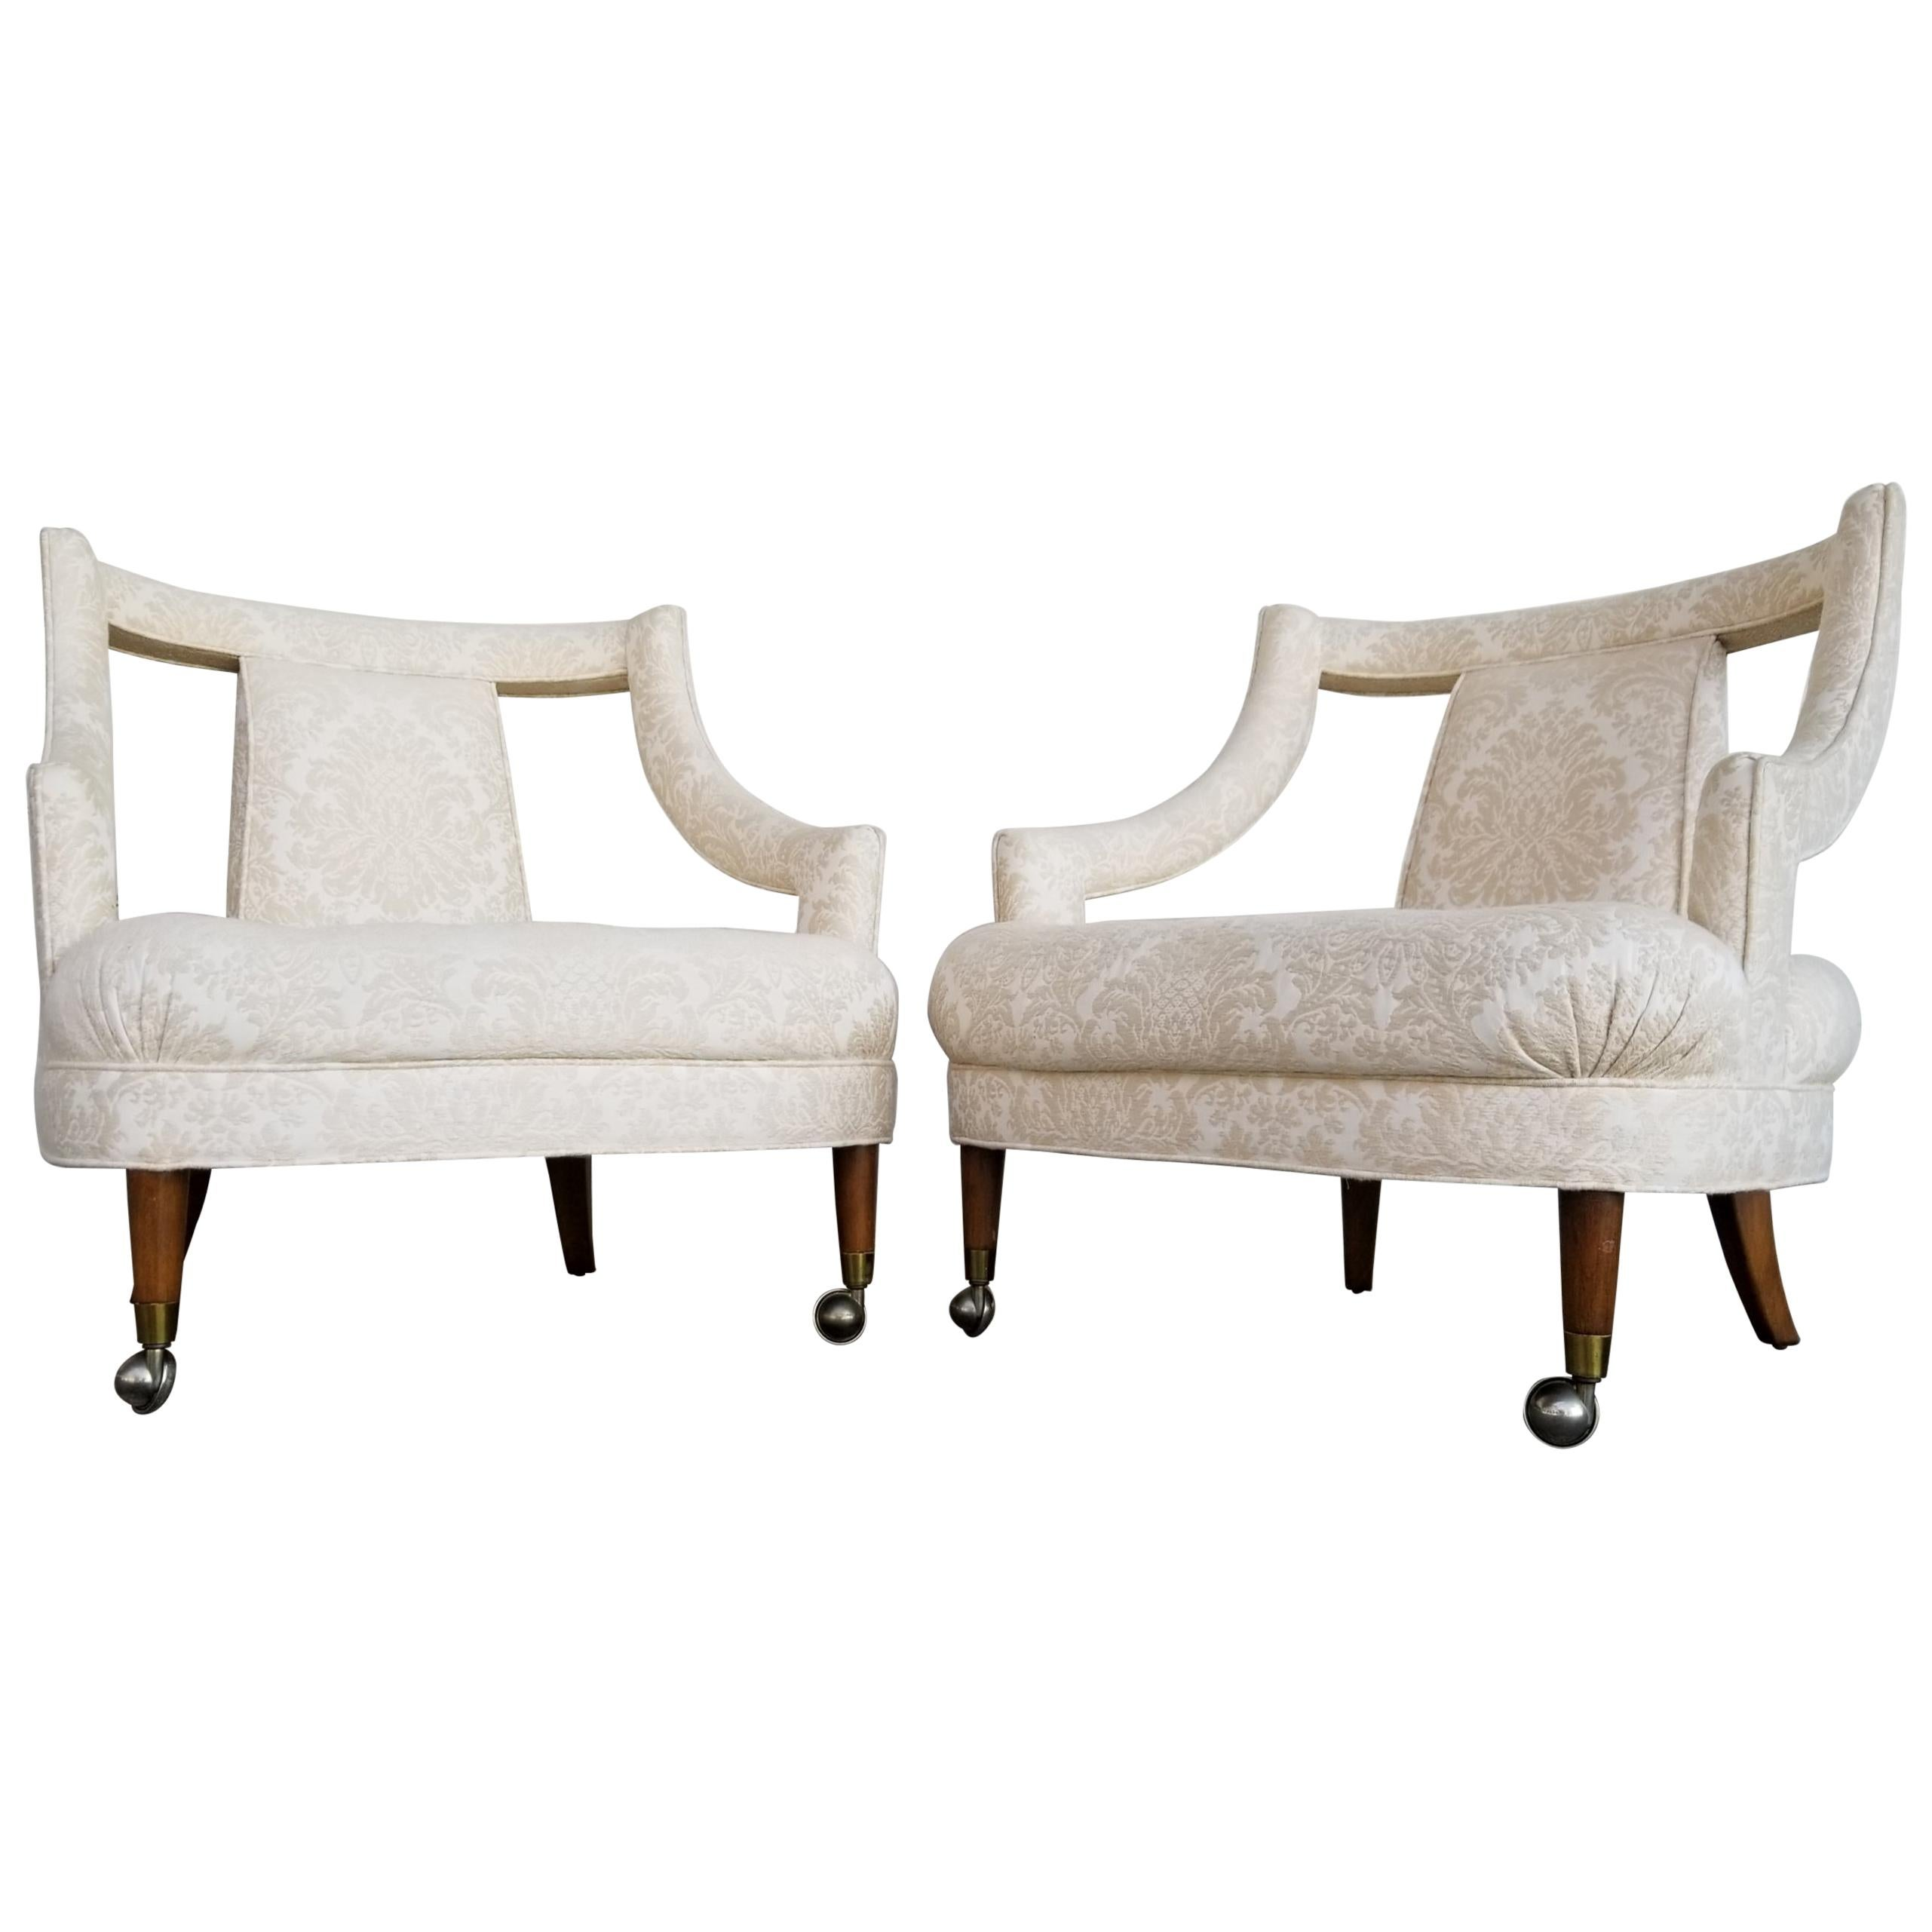 Pair of Hollywood Regency Tufted Lounge Chairs